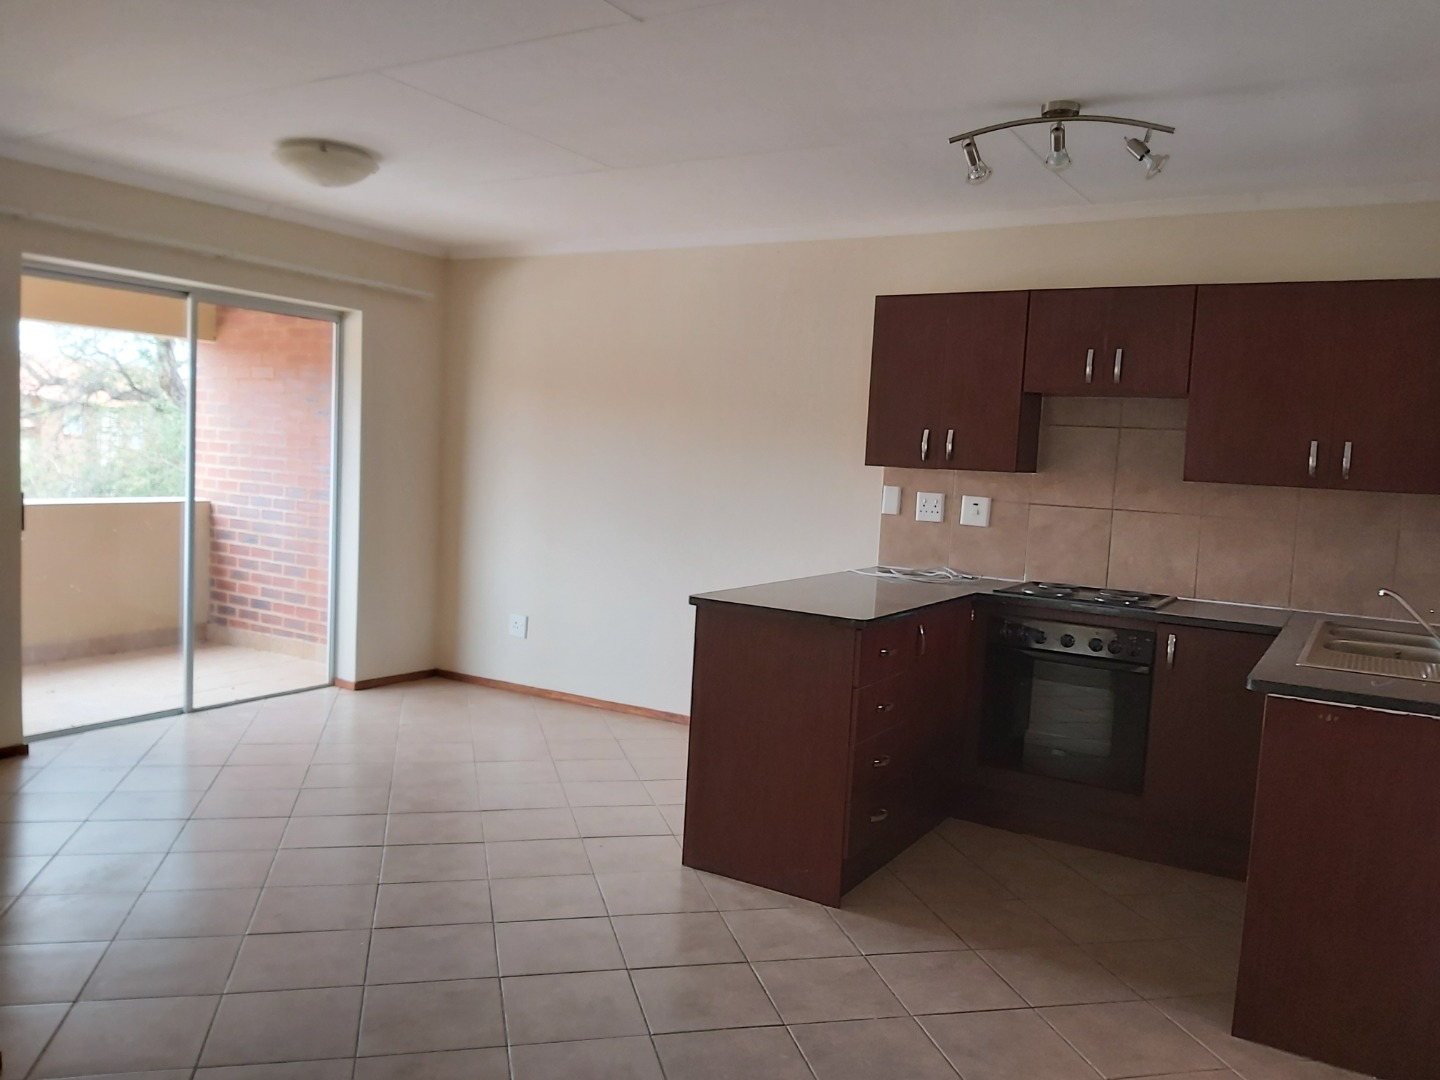 2 Bedroom Apartment / Flat For Sale in Onverwacht